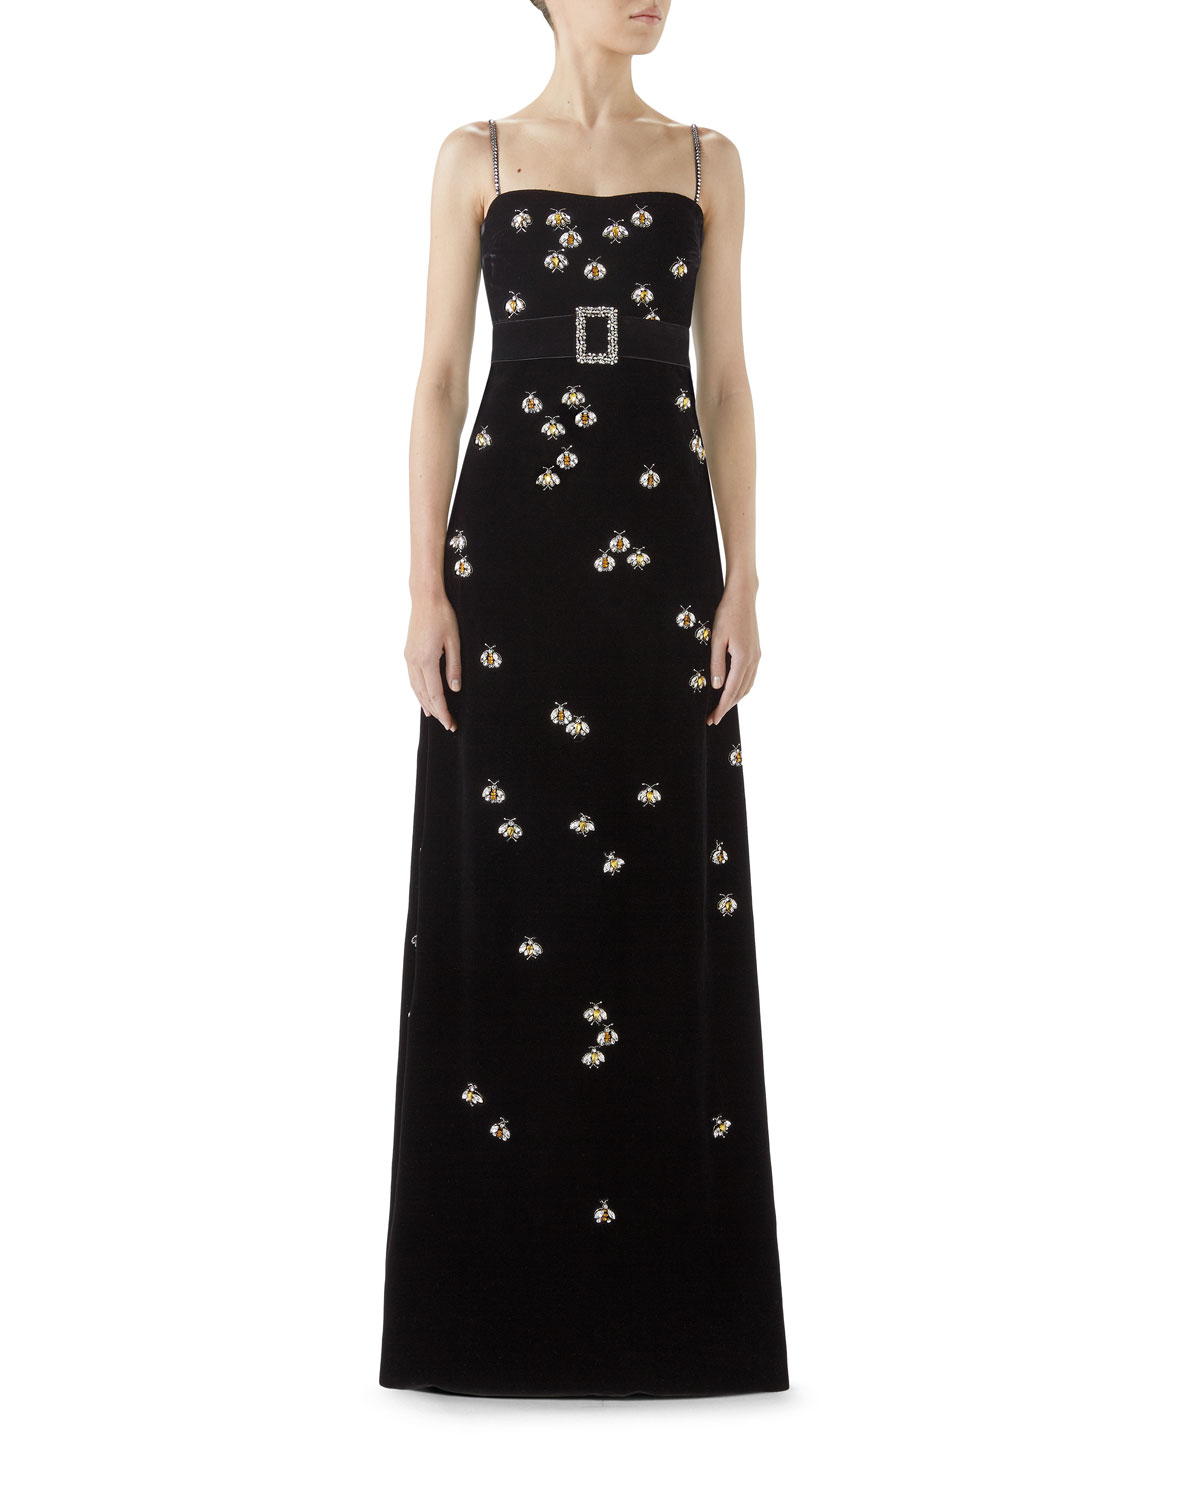 Gucci Spaghetti Strap Velvet Bee Embroidered Gown | Neiman Marcus